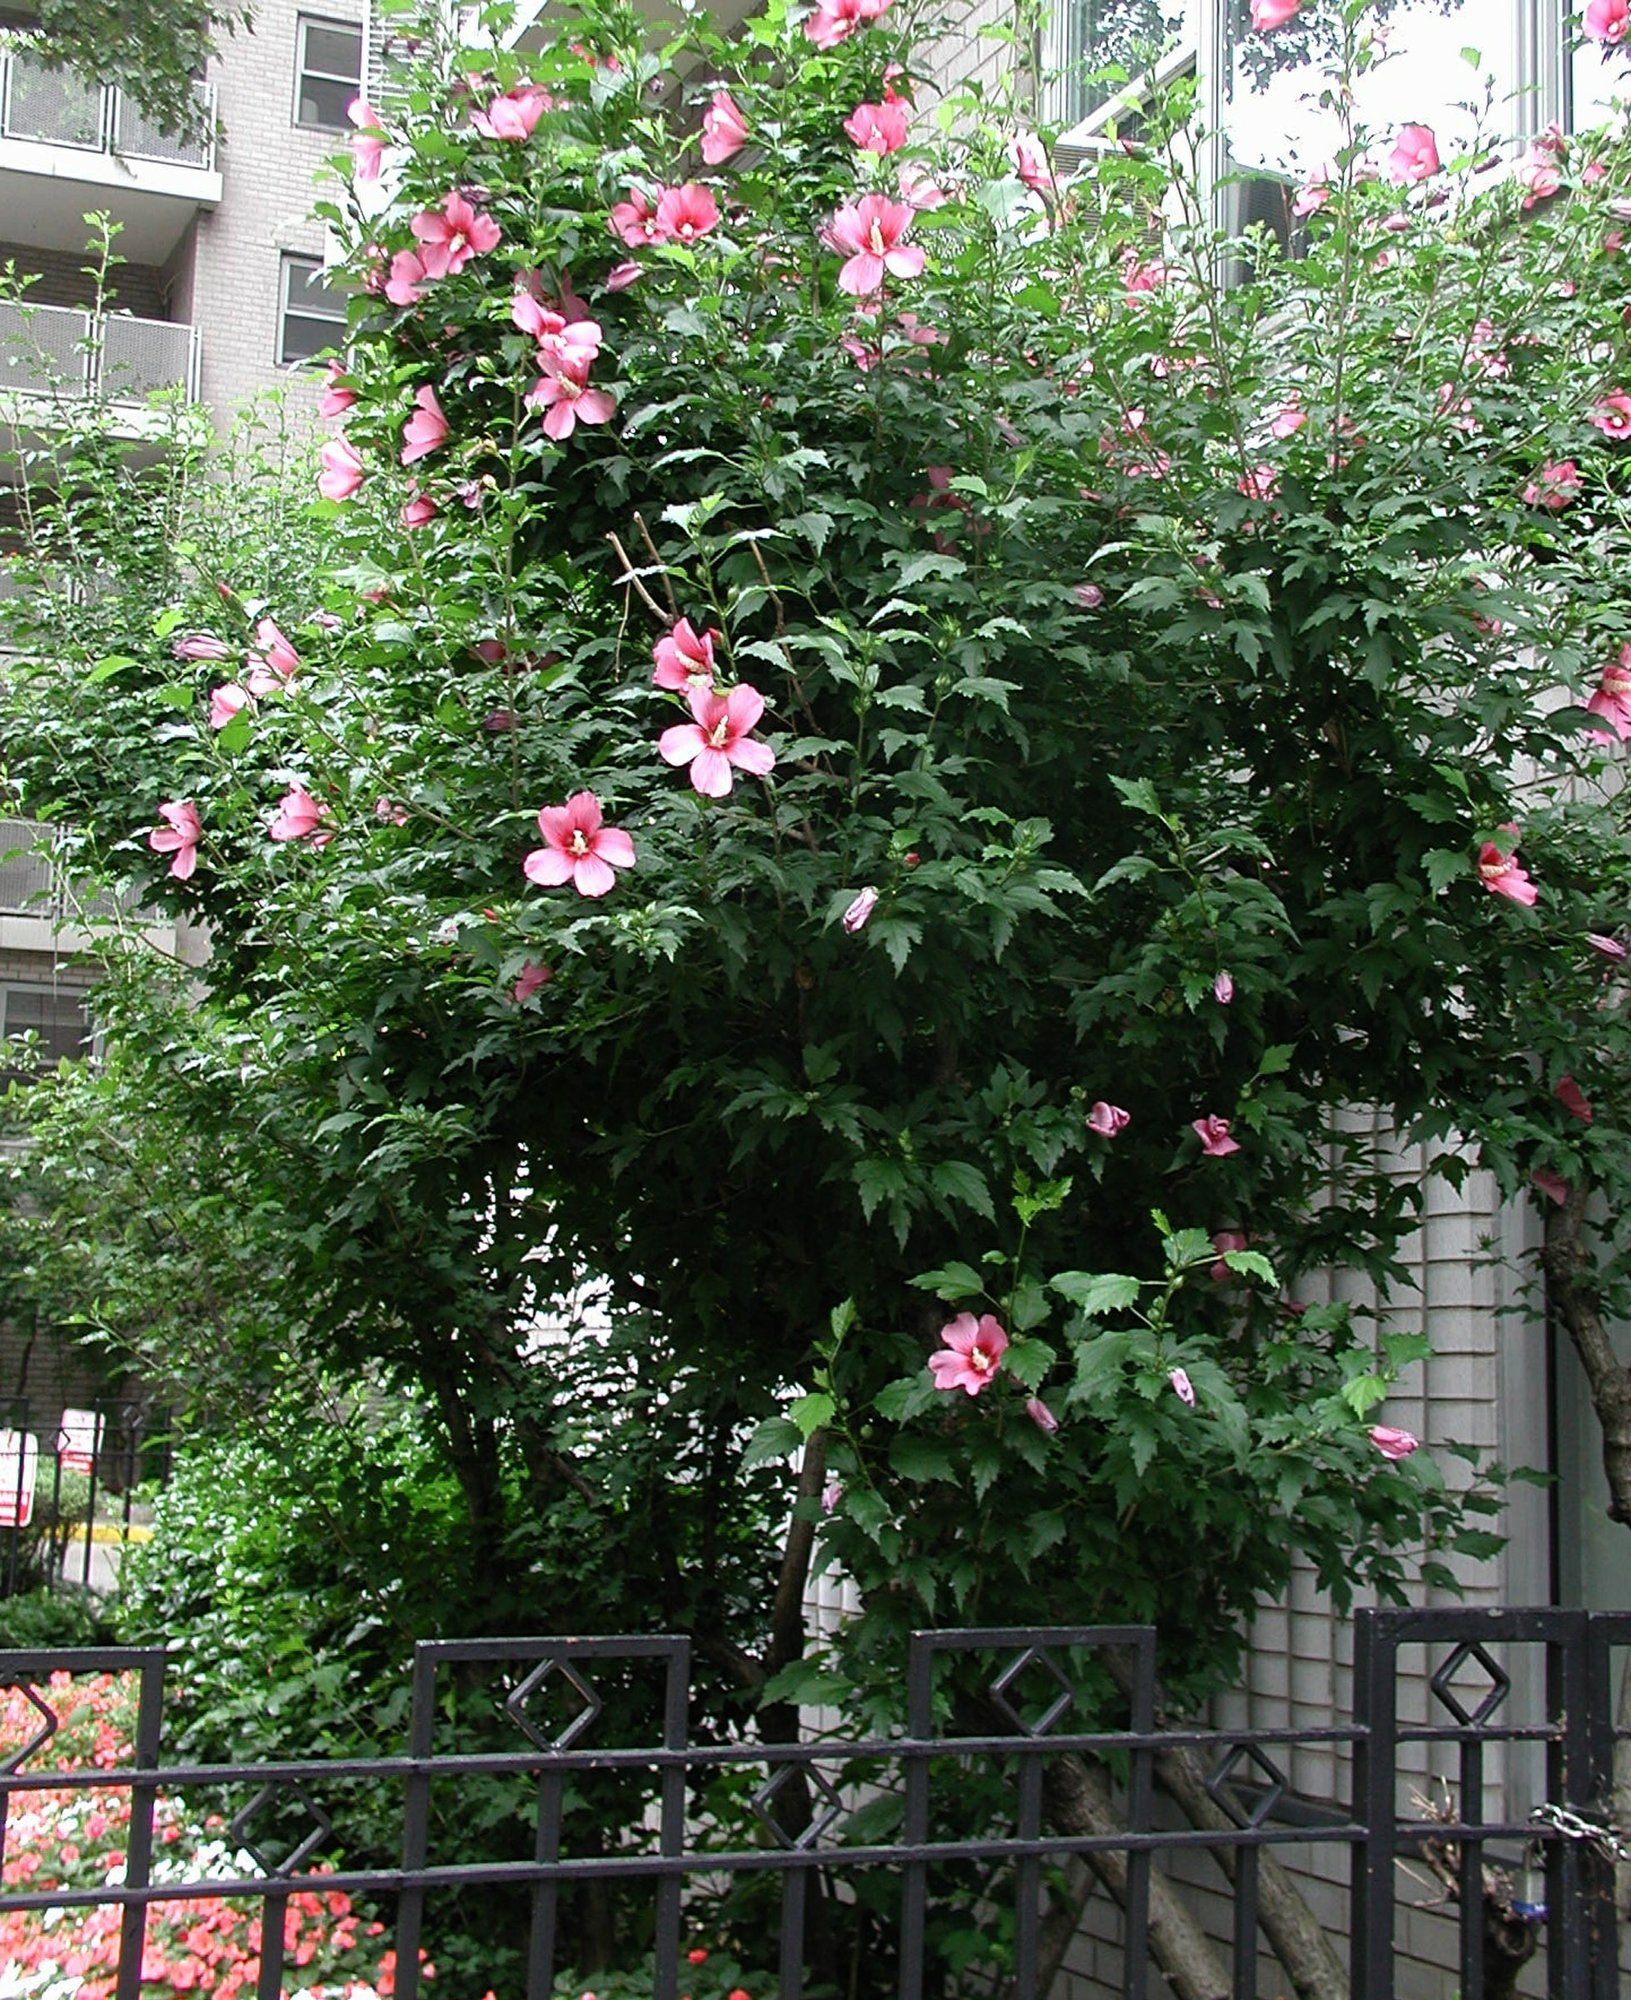 Rose of sharon not a real rose but worth growing not related to rose rose of sharon is a tough shrub that bears colorful blossoms they look like hibiscus blossoms izmirmasajfo